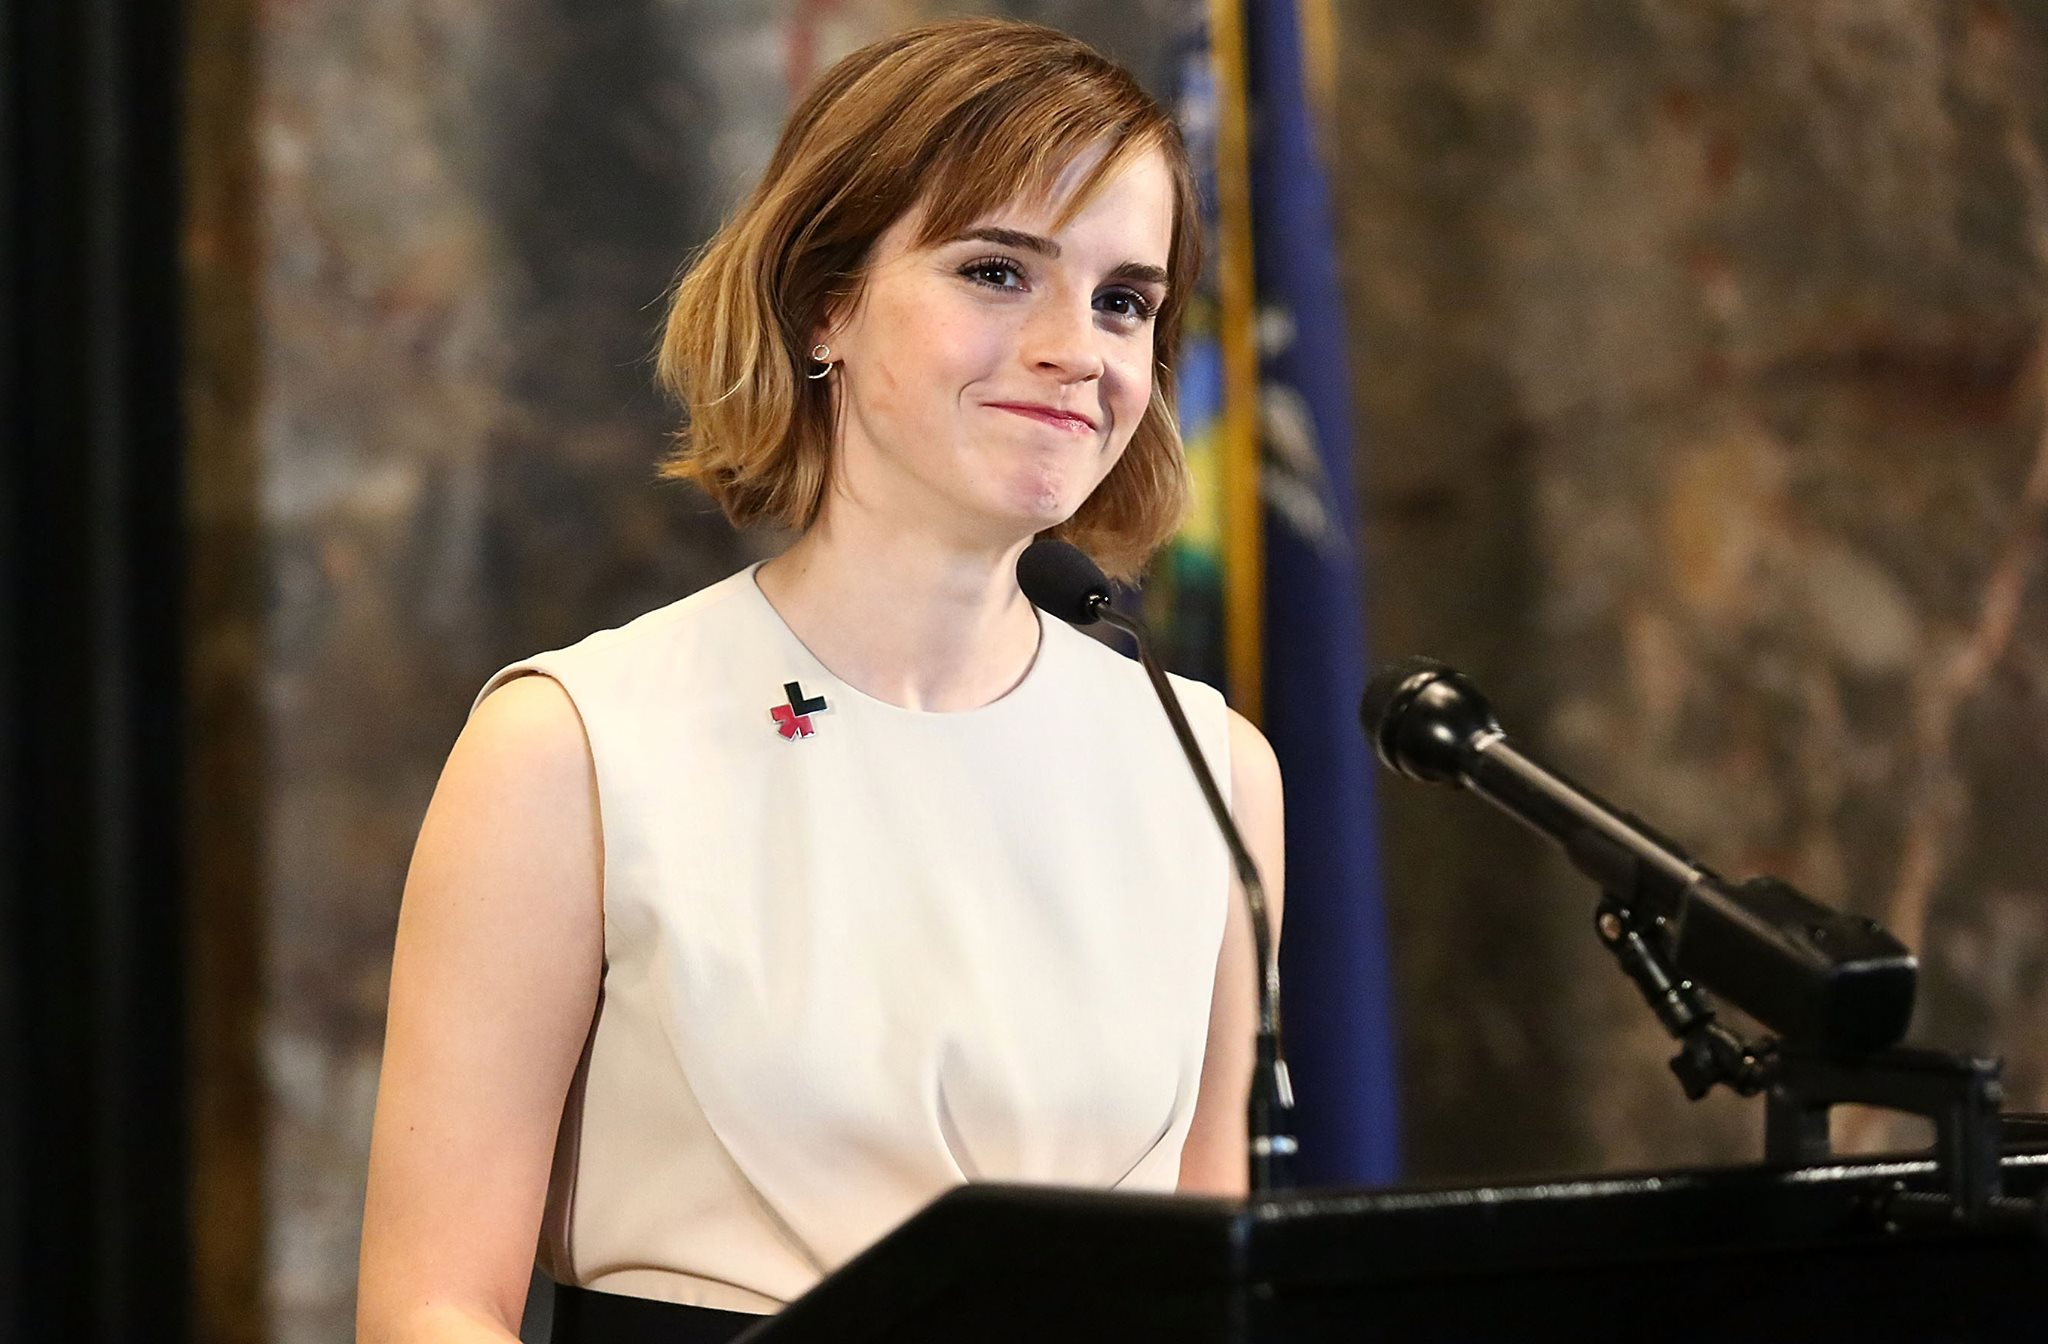 Emma Watson Breasts And Nipples Pics Surface Online, Lawyers Not Happy 14393981 10157582987335604 1031011161 o